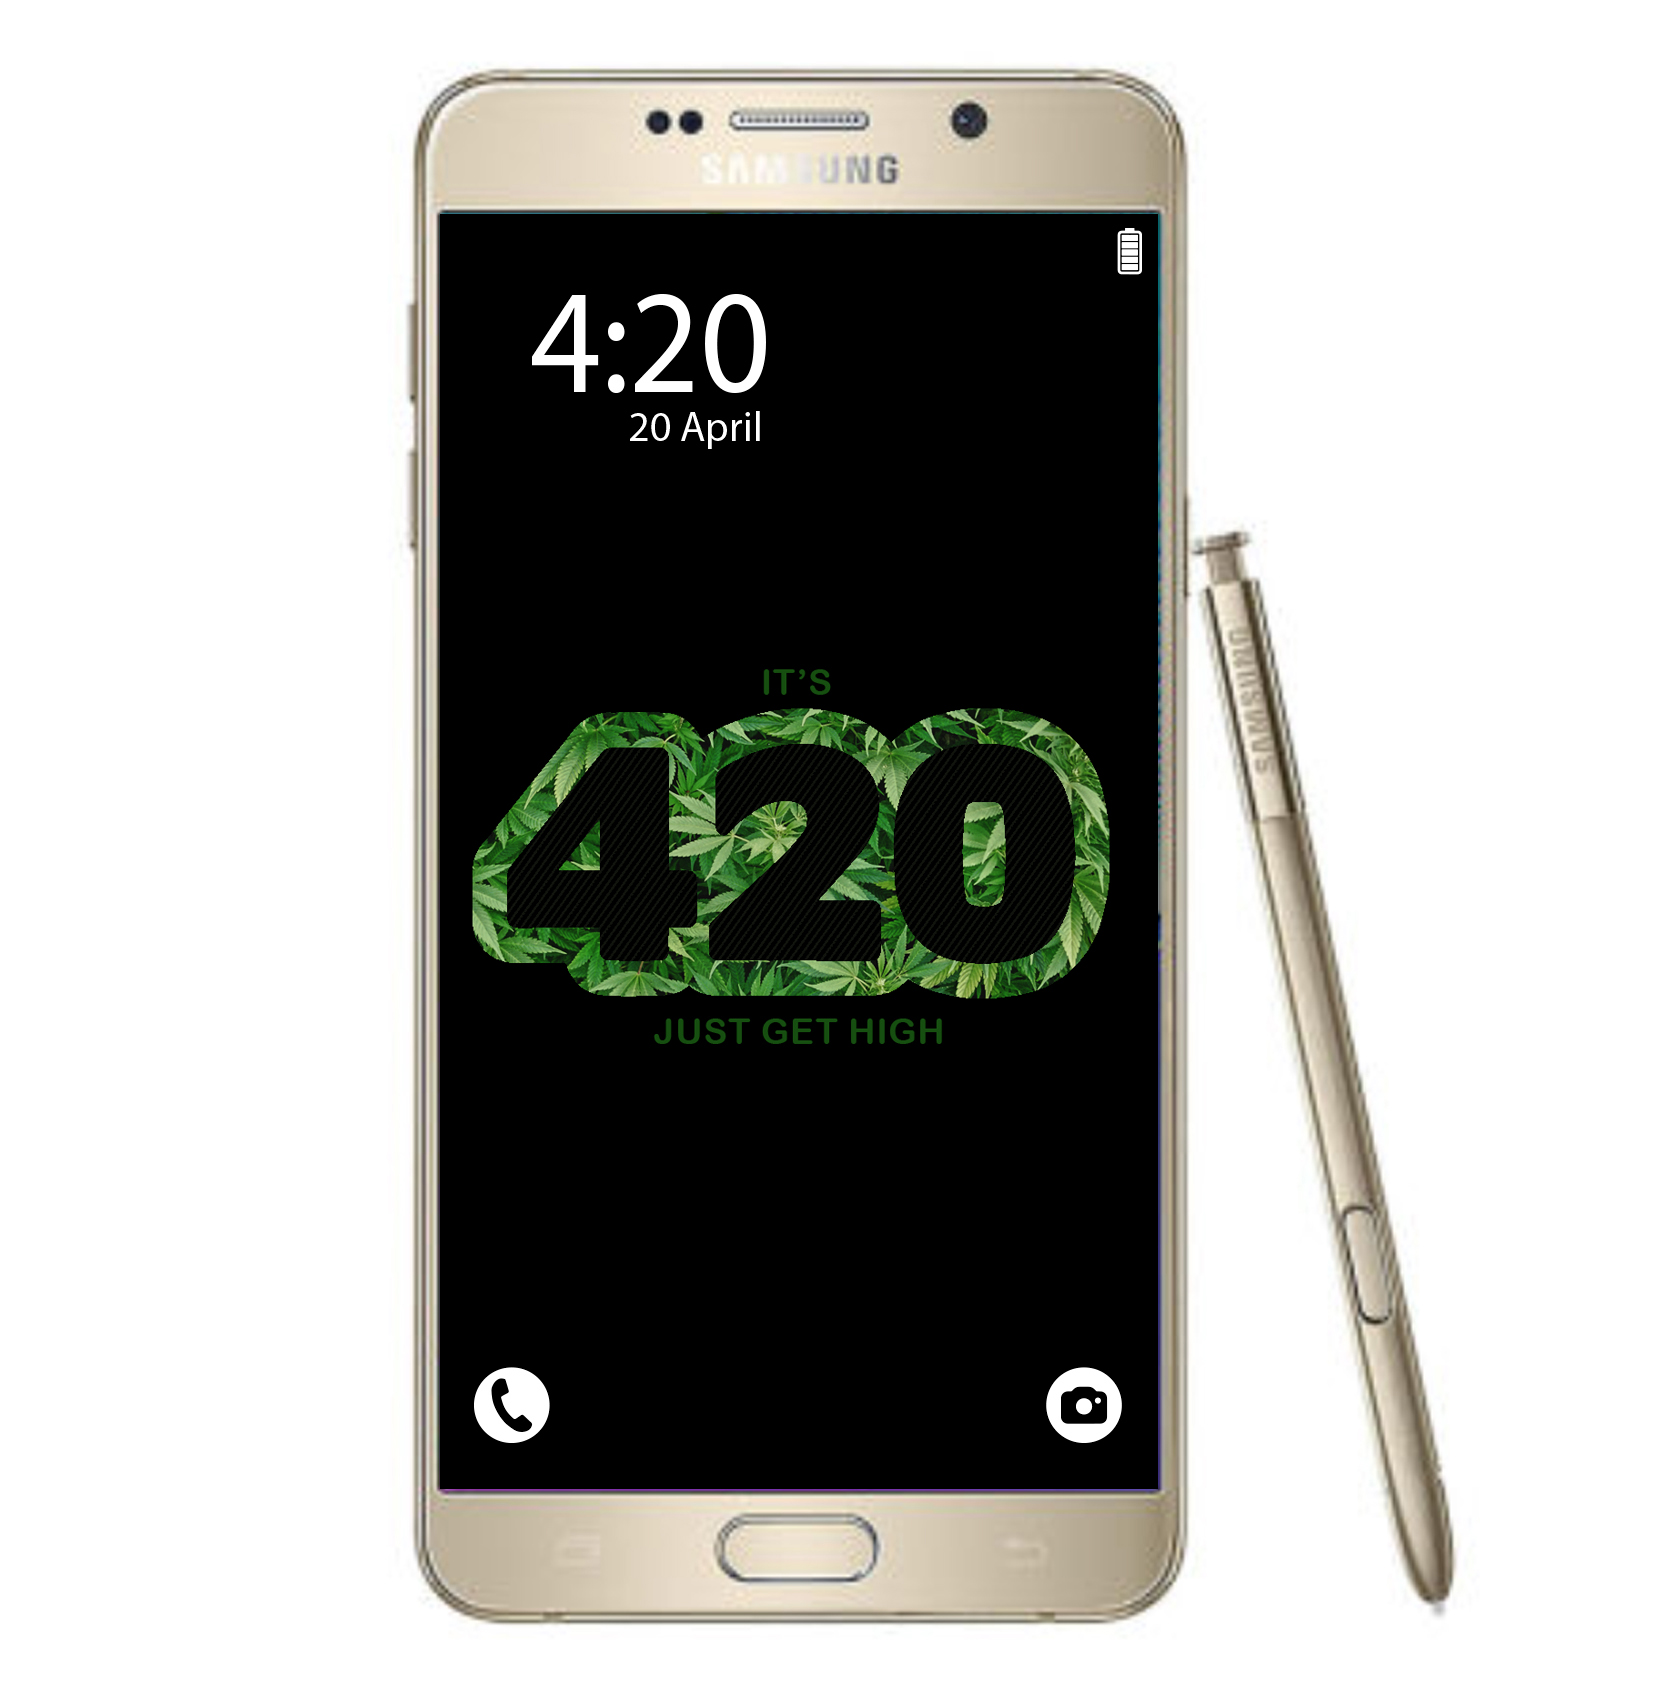 just get high_samsung_420_mockup